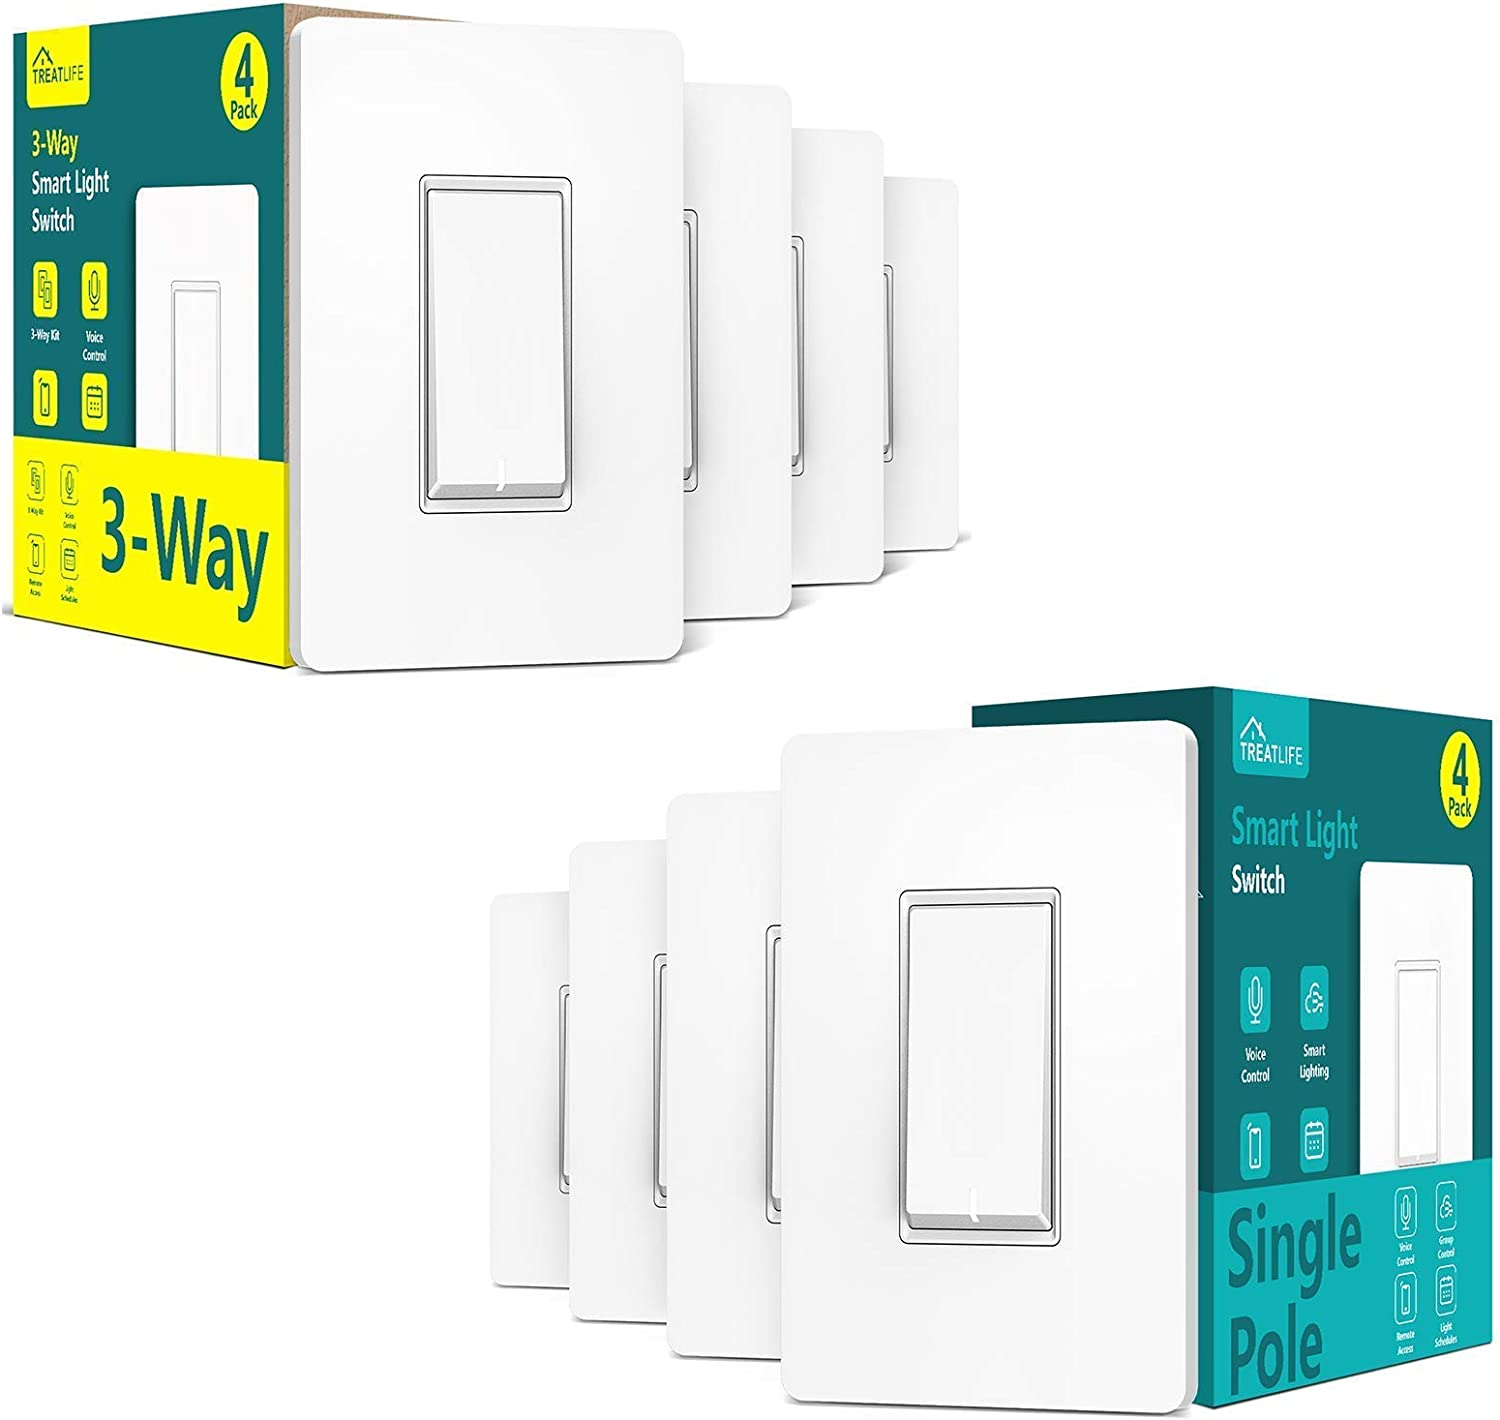 Smart Single Pole On/Off Switch 4Pack+3-Way Switch 4Pack Bundles